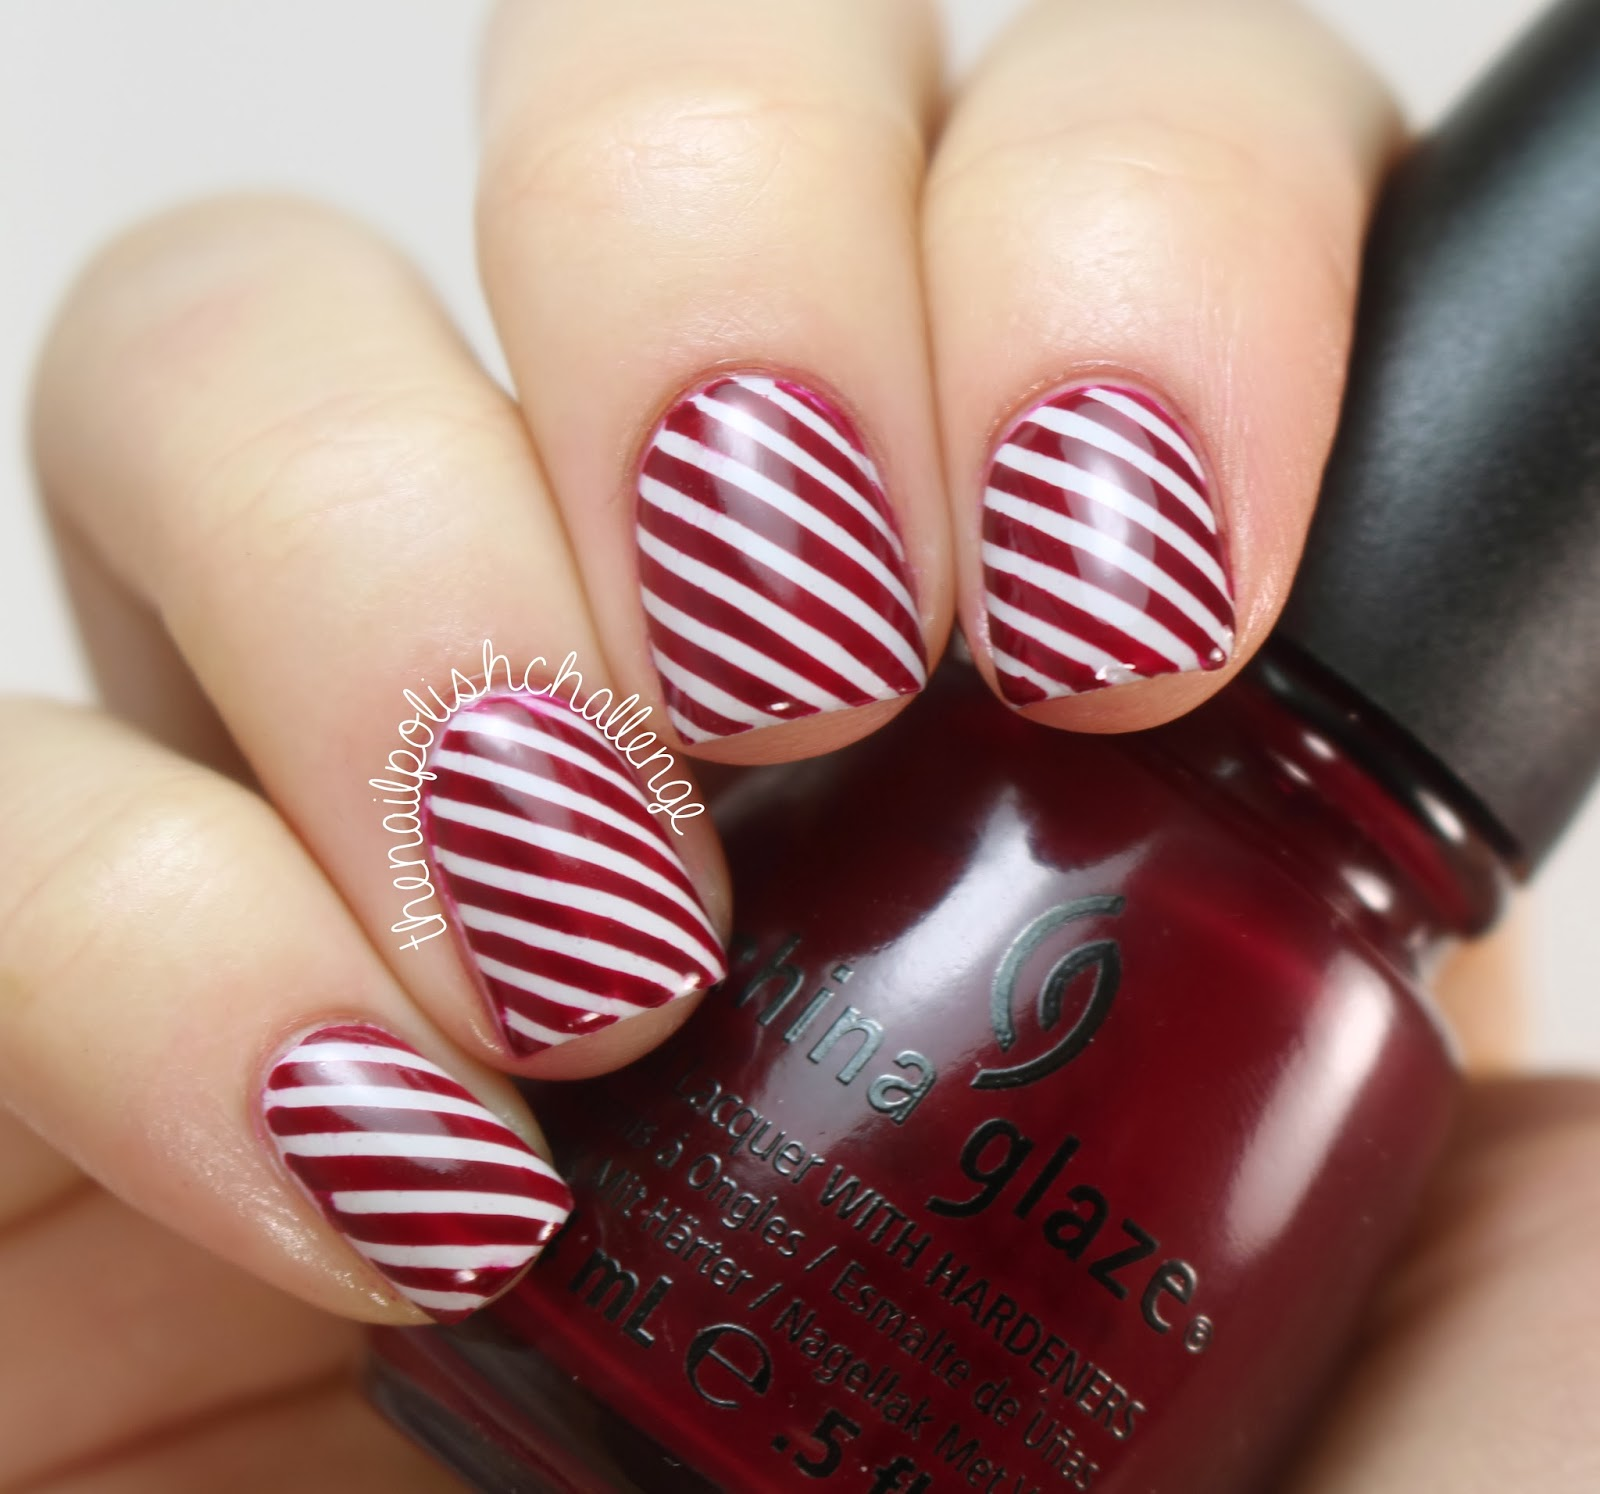 Concrete And Nail Polish Striped Nail Art: The Nail Polish Challenge: Candy Cane Striped Nail Art